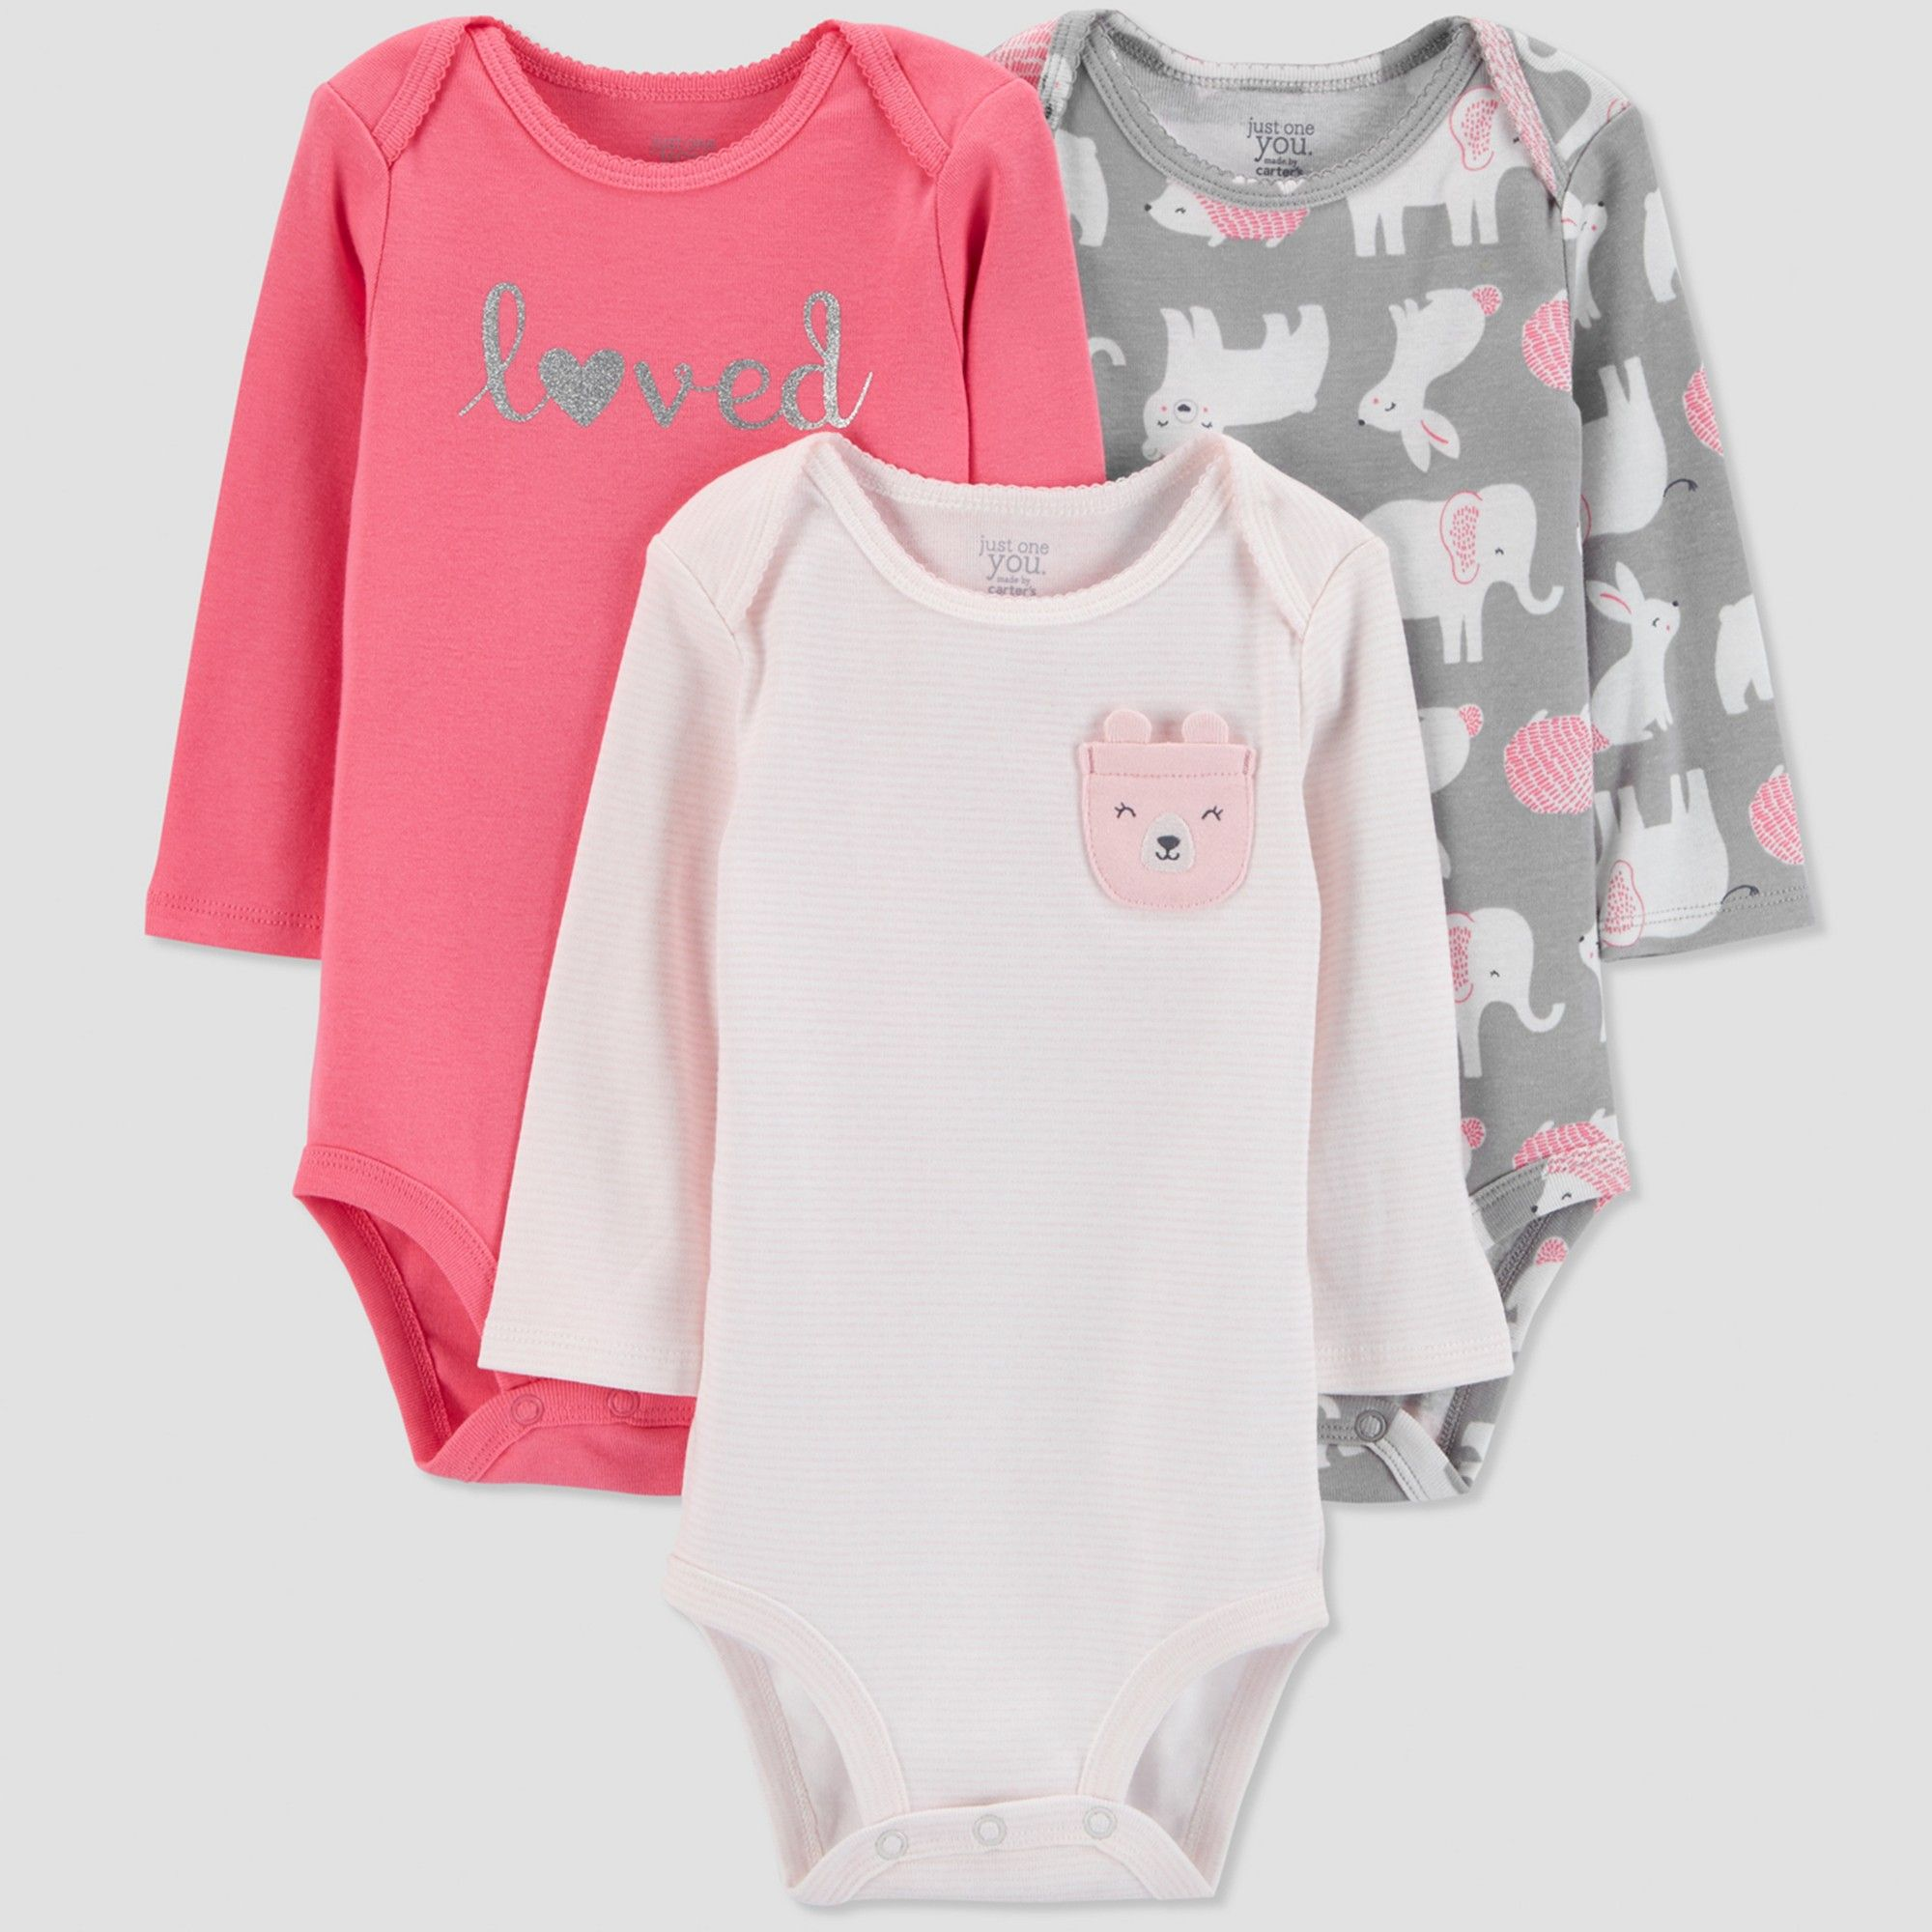 cc501561d Baby Girls  3pk Long sleeve Love Bodysuit - Just One You made by ...